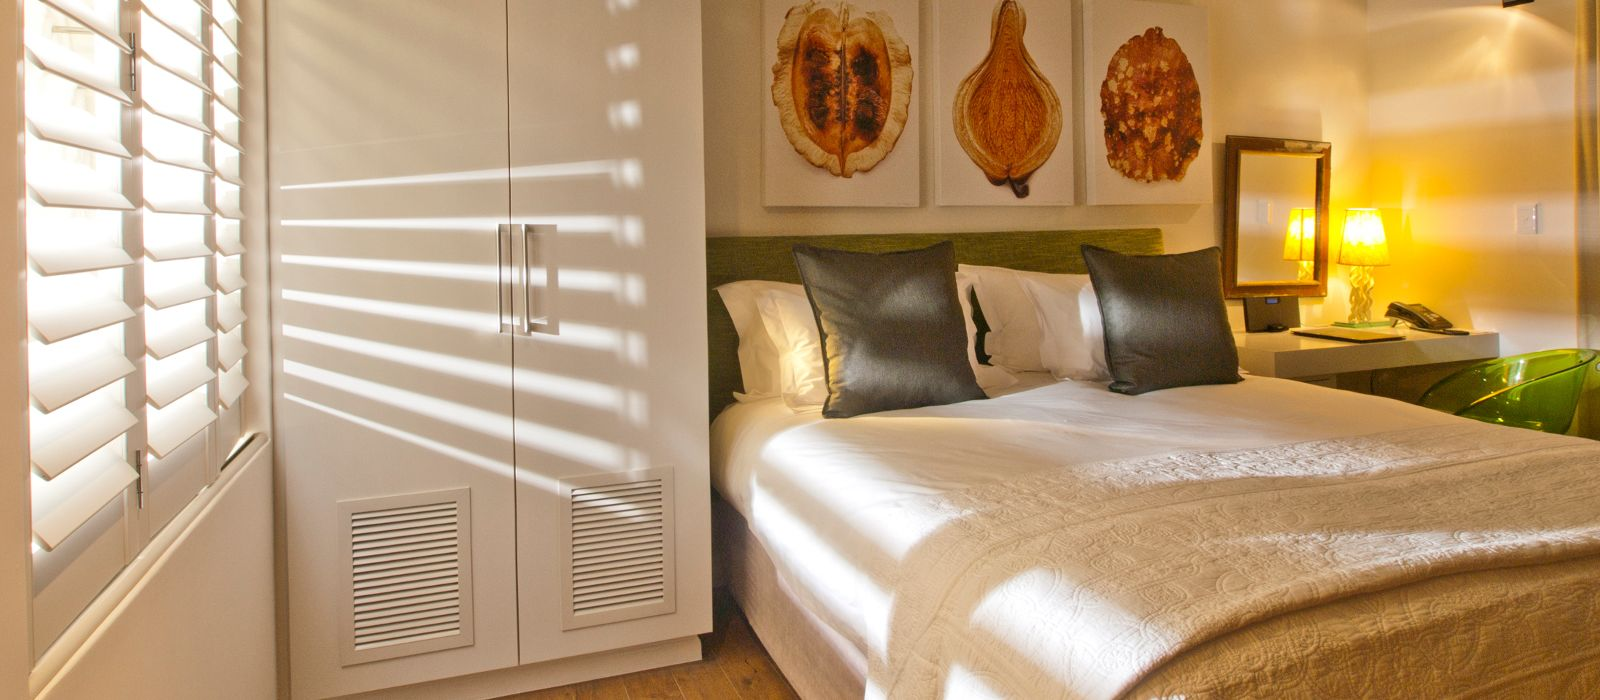 Hotel Turbine Boutique  South Africa